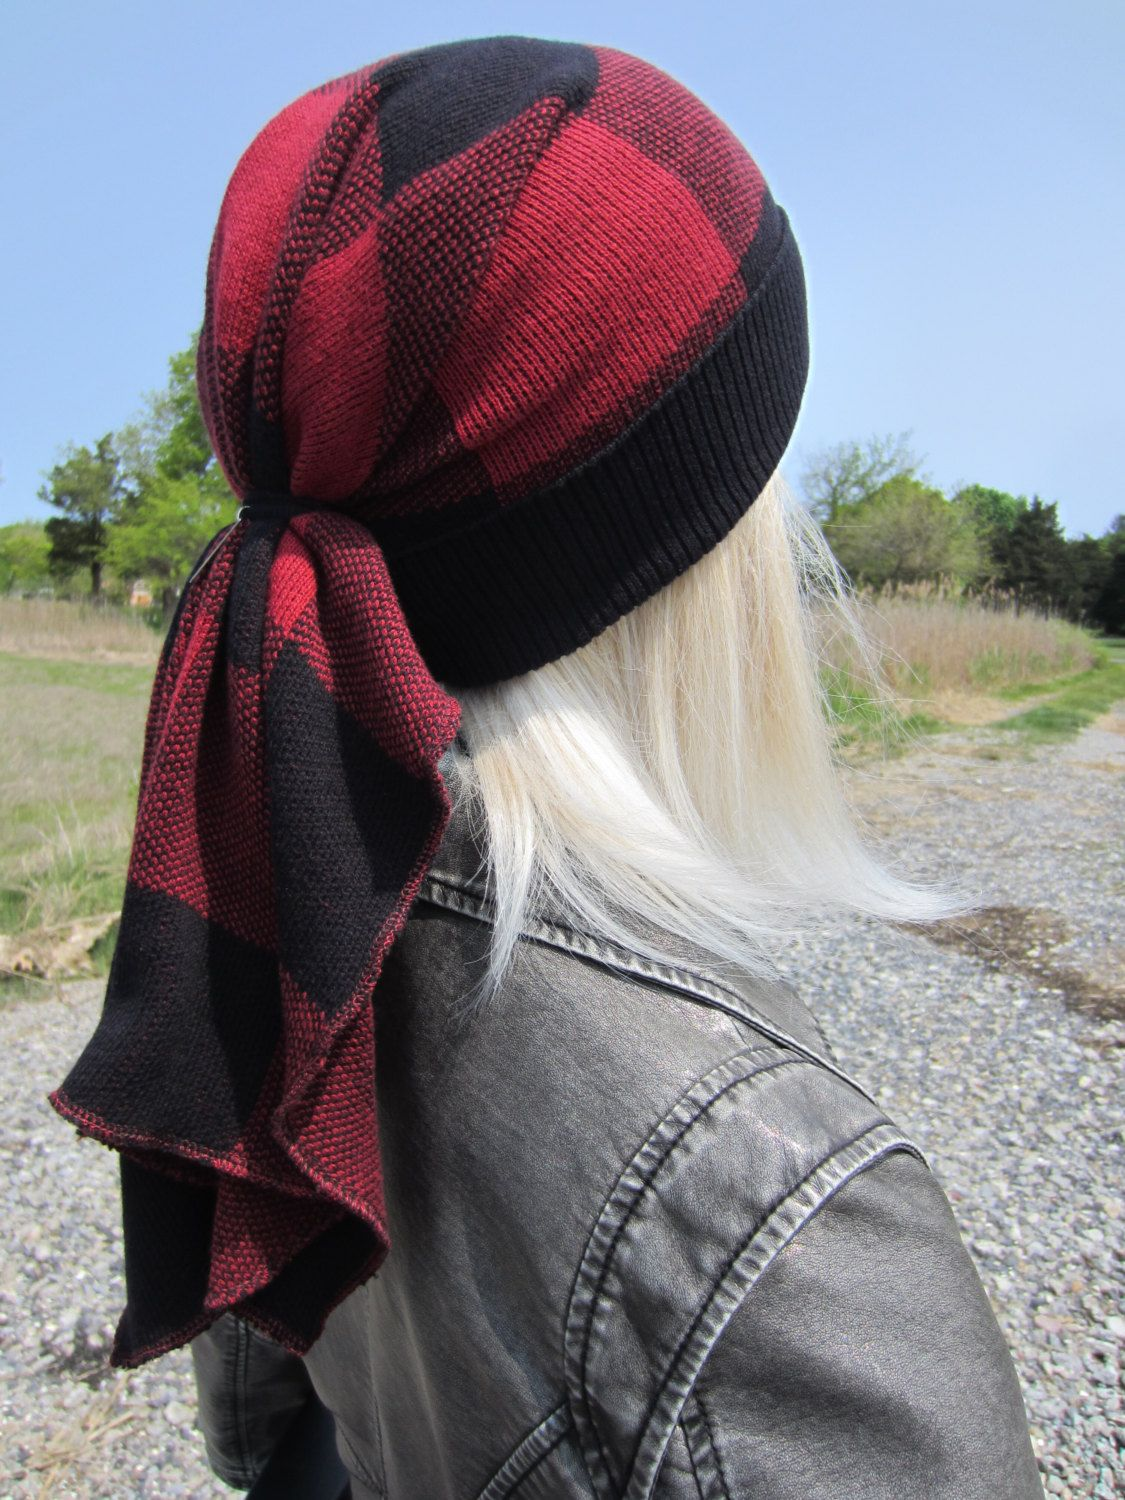 f367a950cfd4b Doo Rag Beanie Buffalo Plaid Black Red Cotton Knit Tie Back Tam Long  Oversized Ponytail Hat by Vacationhouse A1126 by Vacationhouse on Etsy